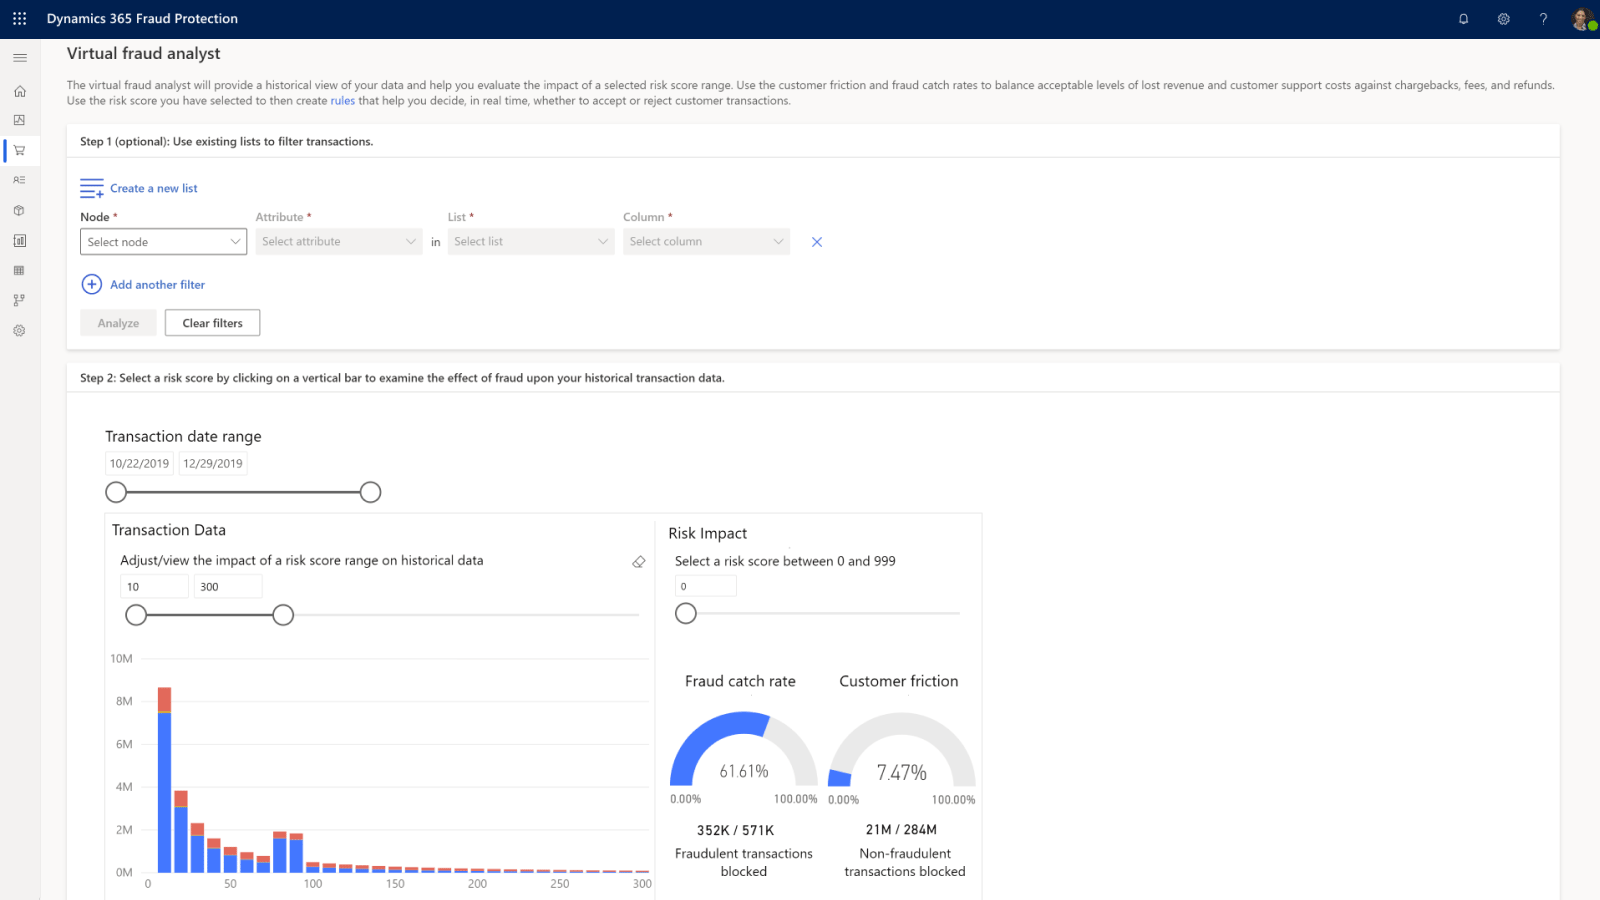 Dynamics 365 Fraud Protection visualize